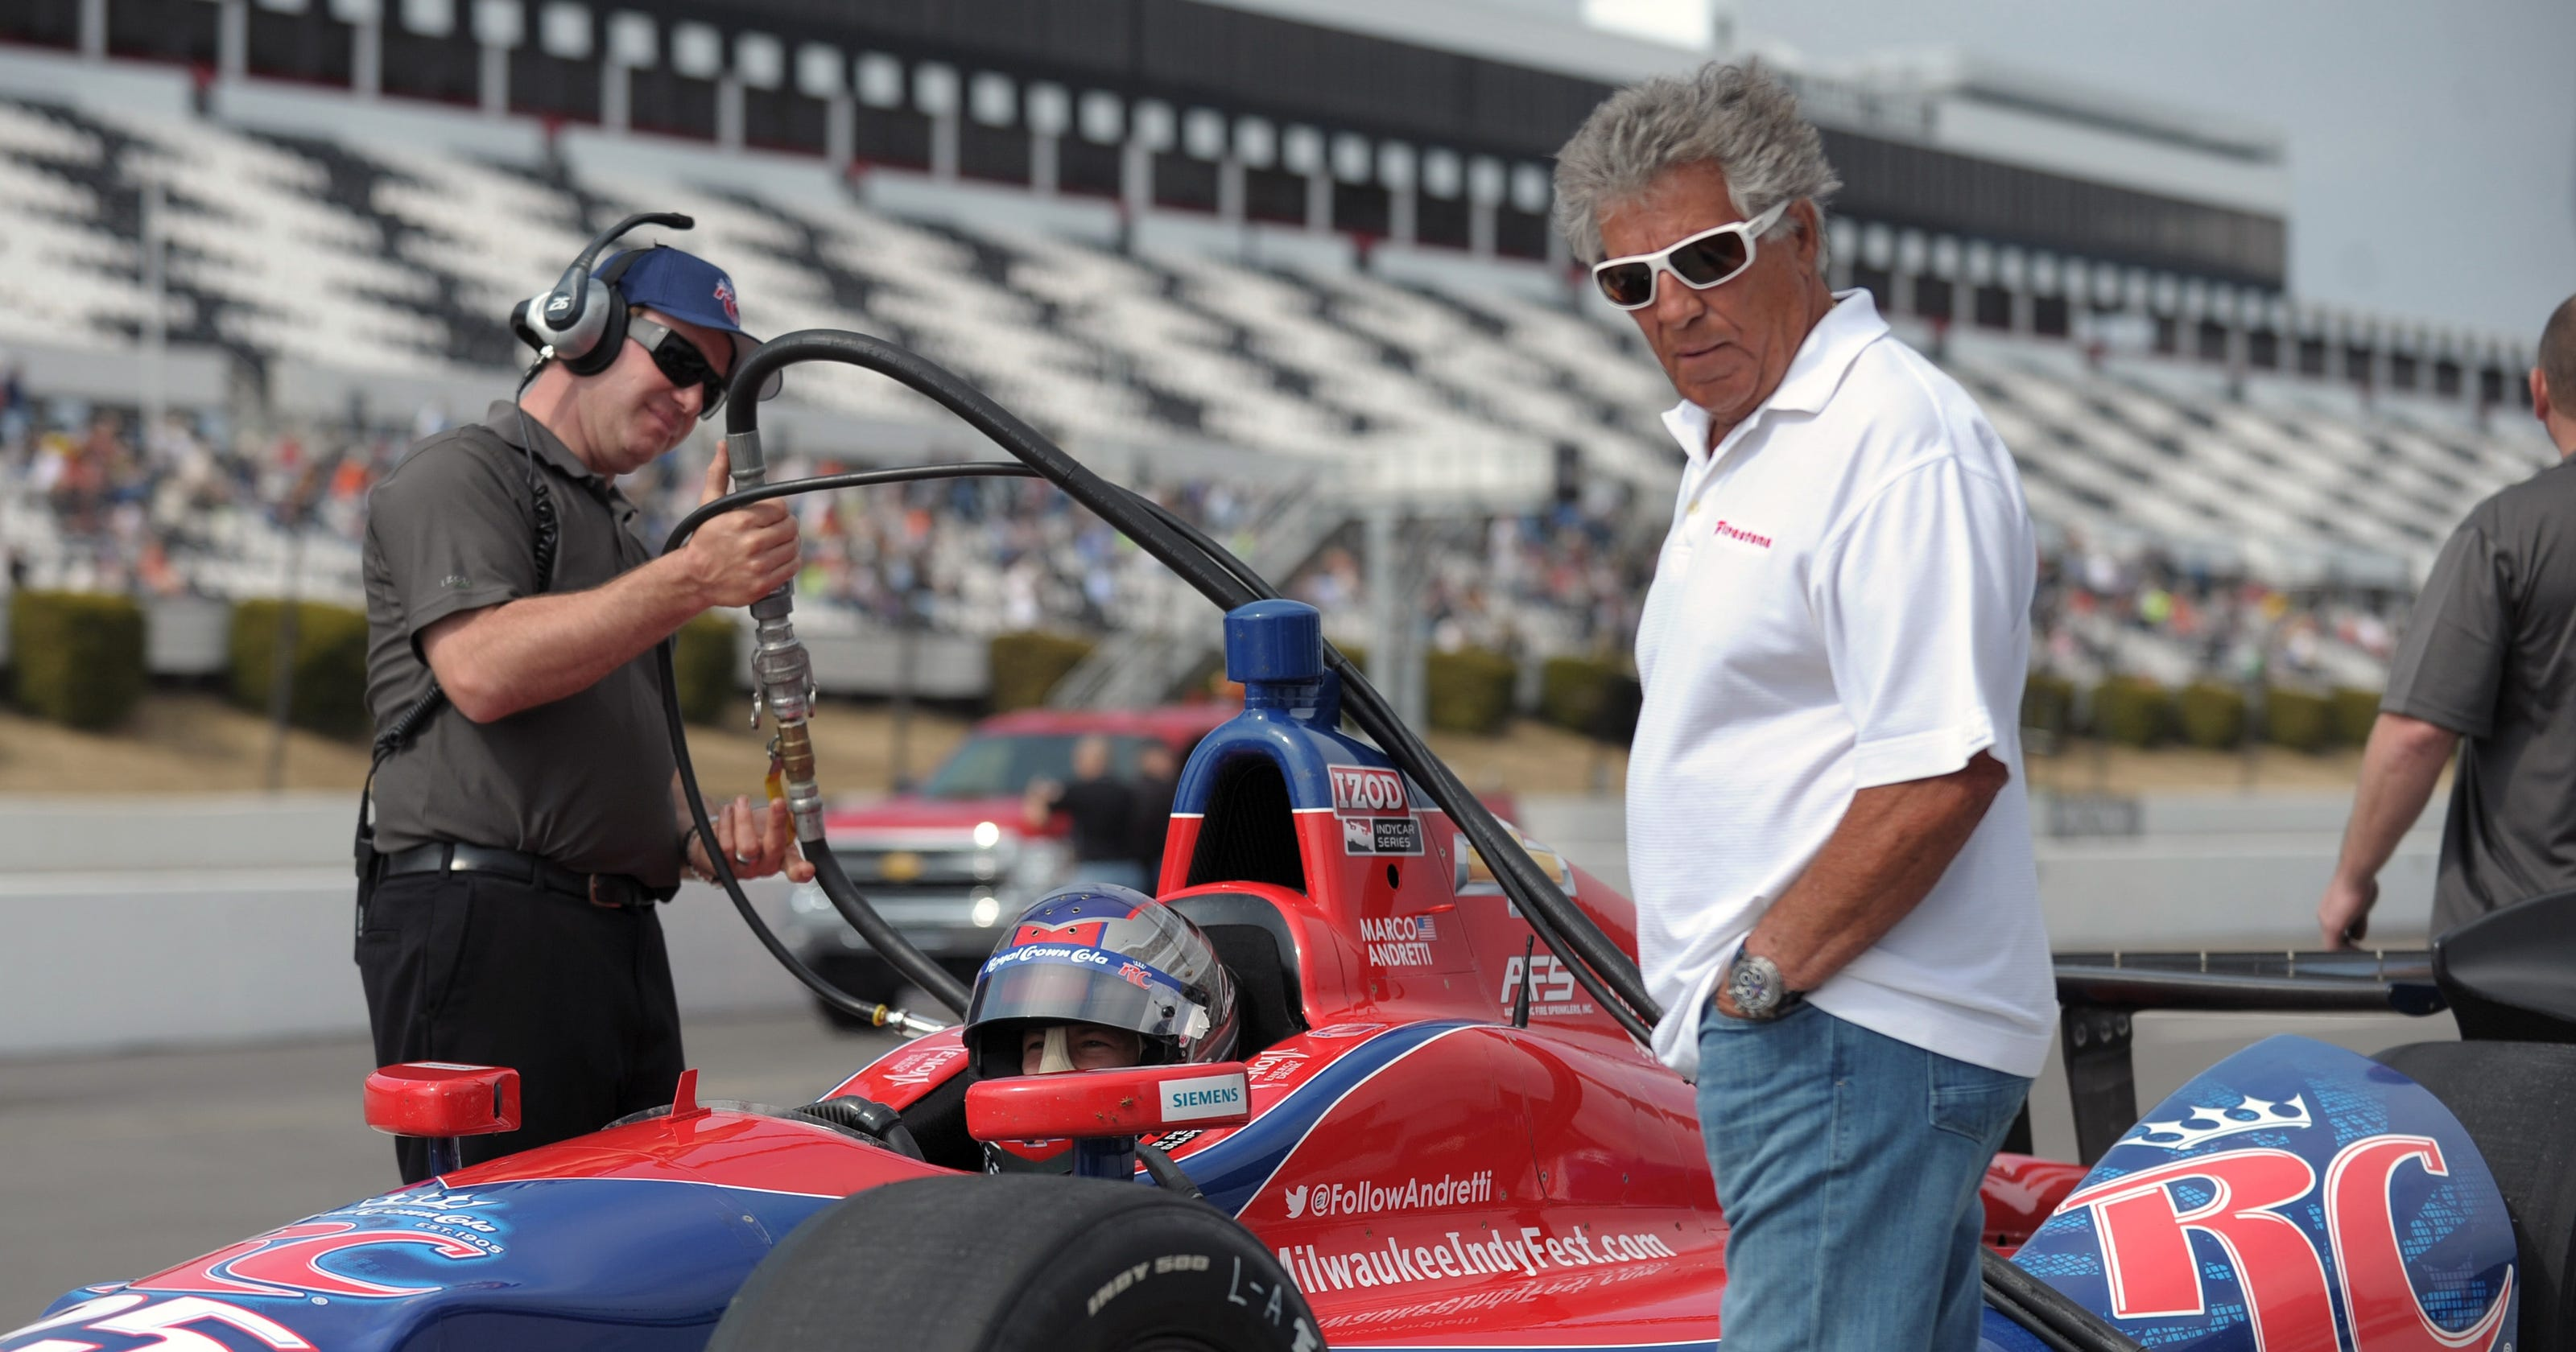 IndyCar returns to Pocono for first time since 1989